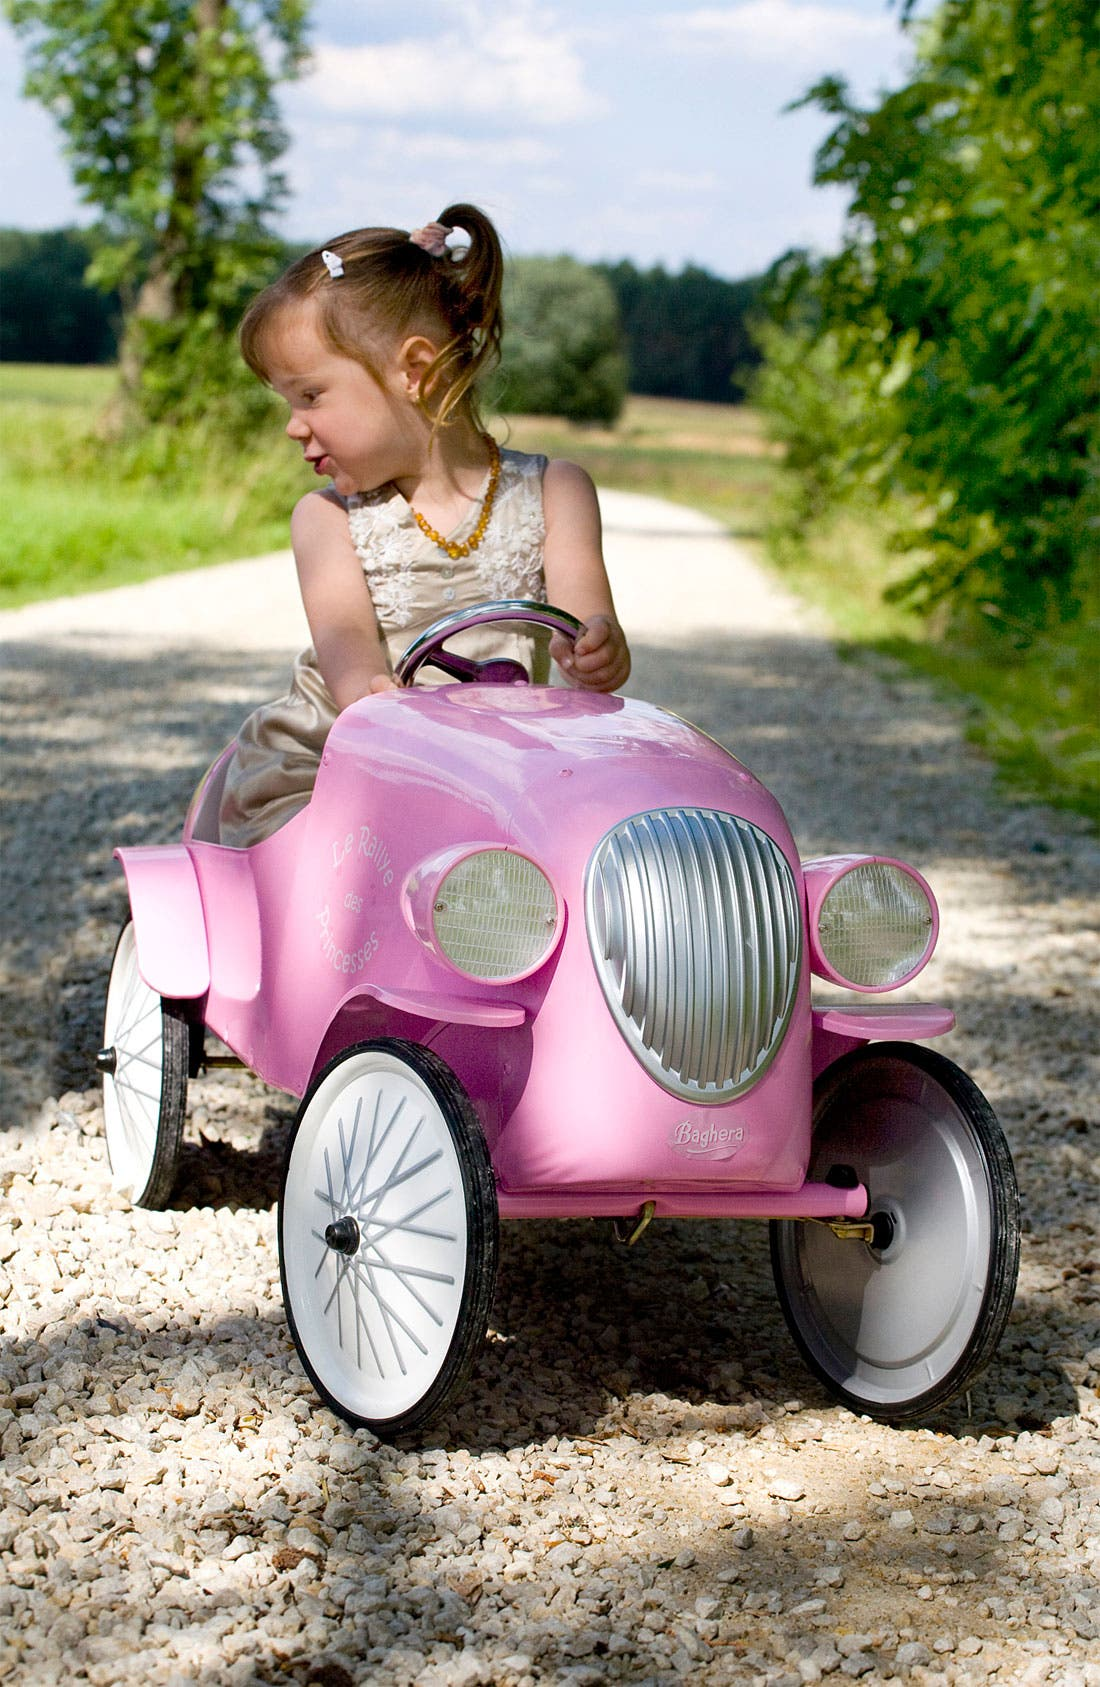 Alternate Image 2  - Baghera 'Le Mans' Pedal Car (Toddler Girls)